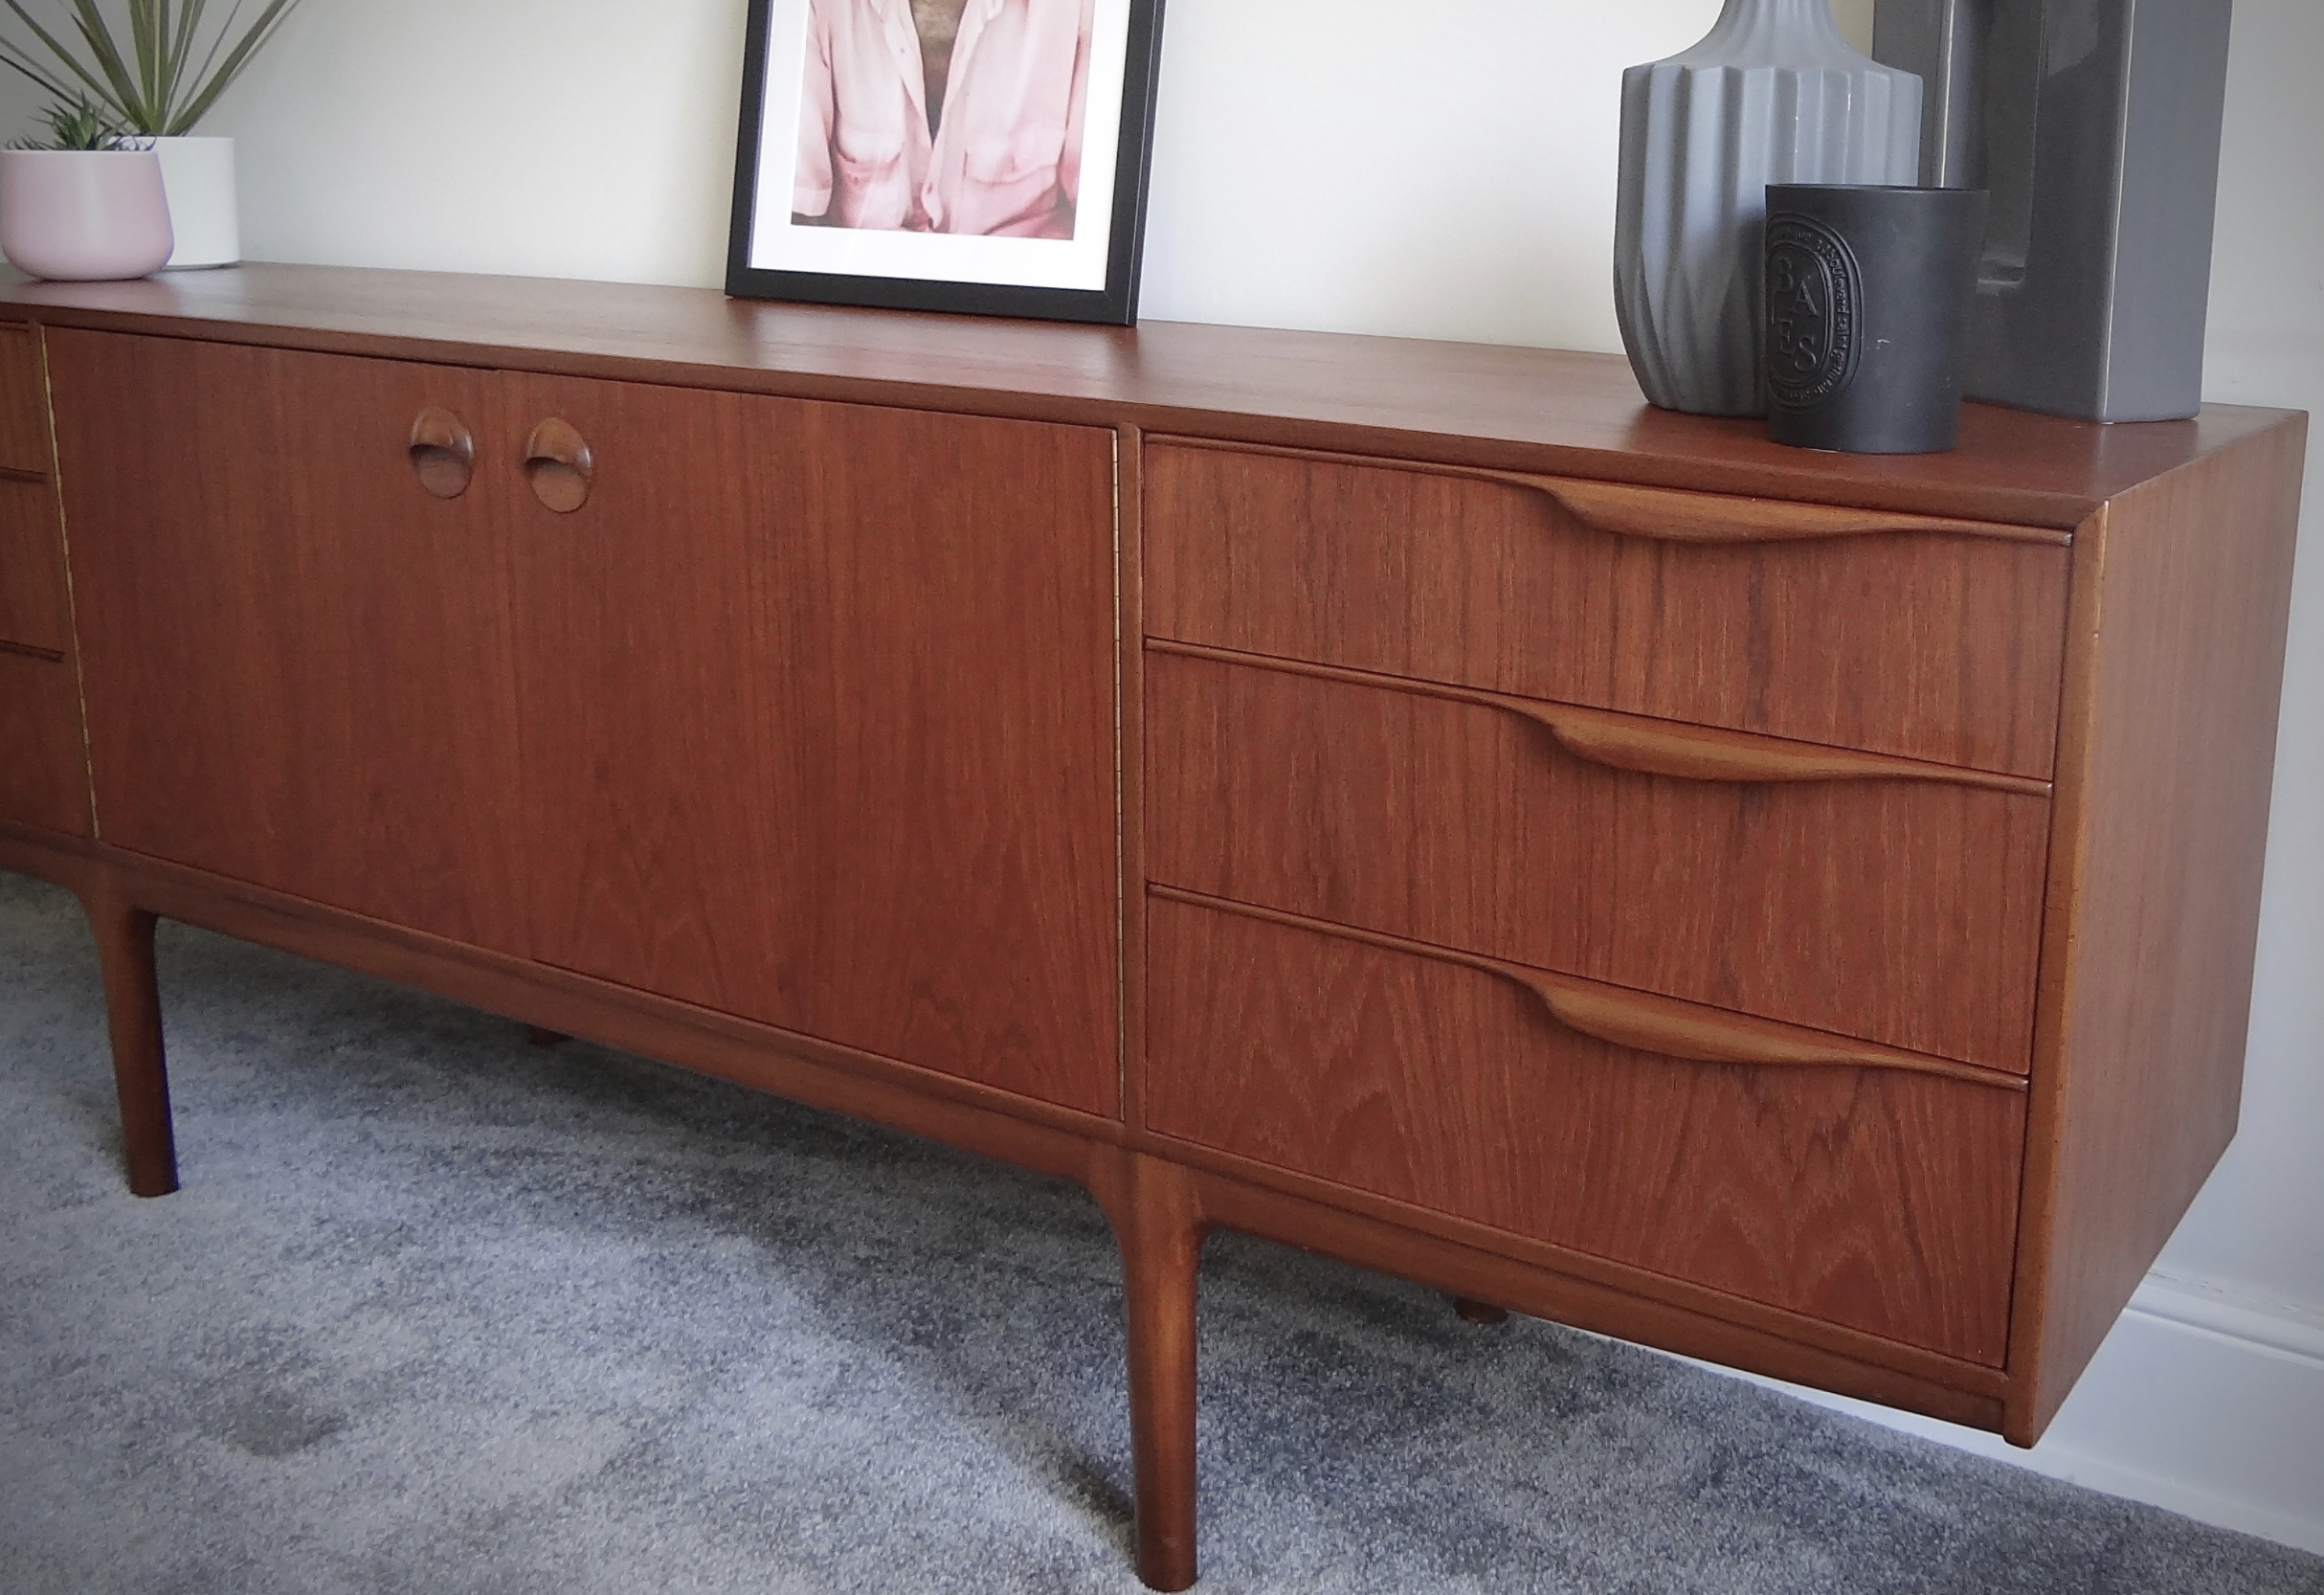 1960s AC McIntosh teak sideboard £985 at vinteriors.co